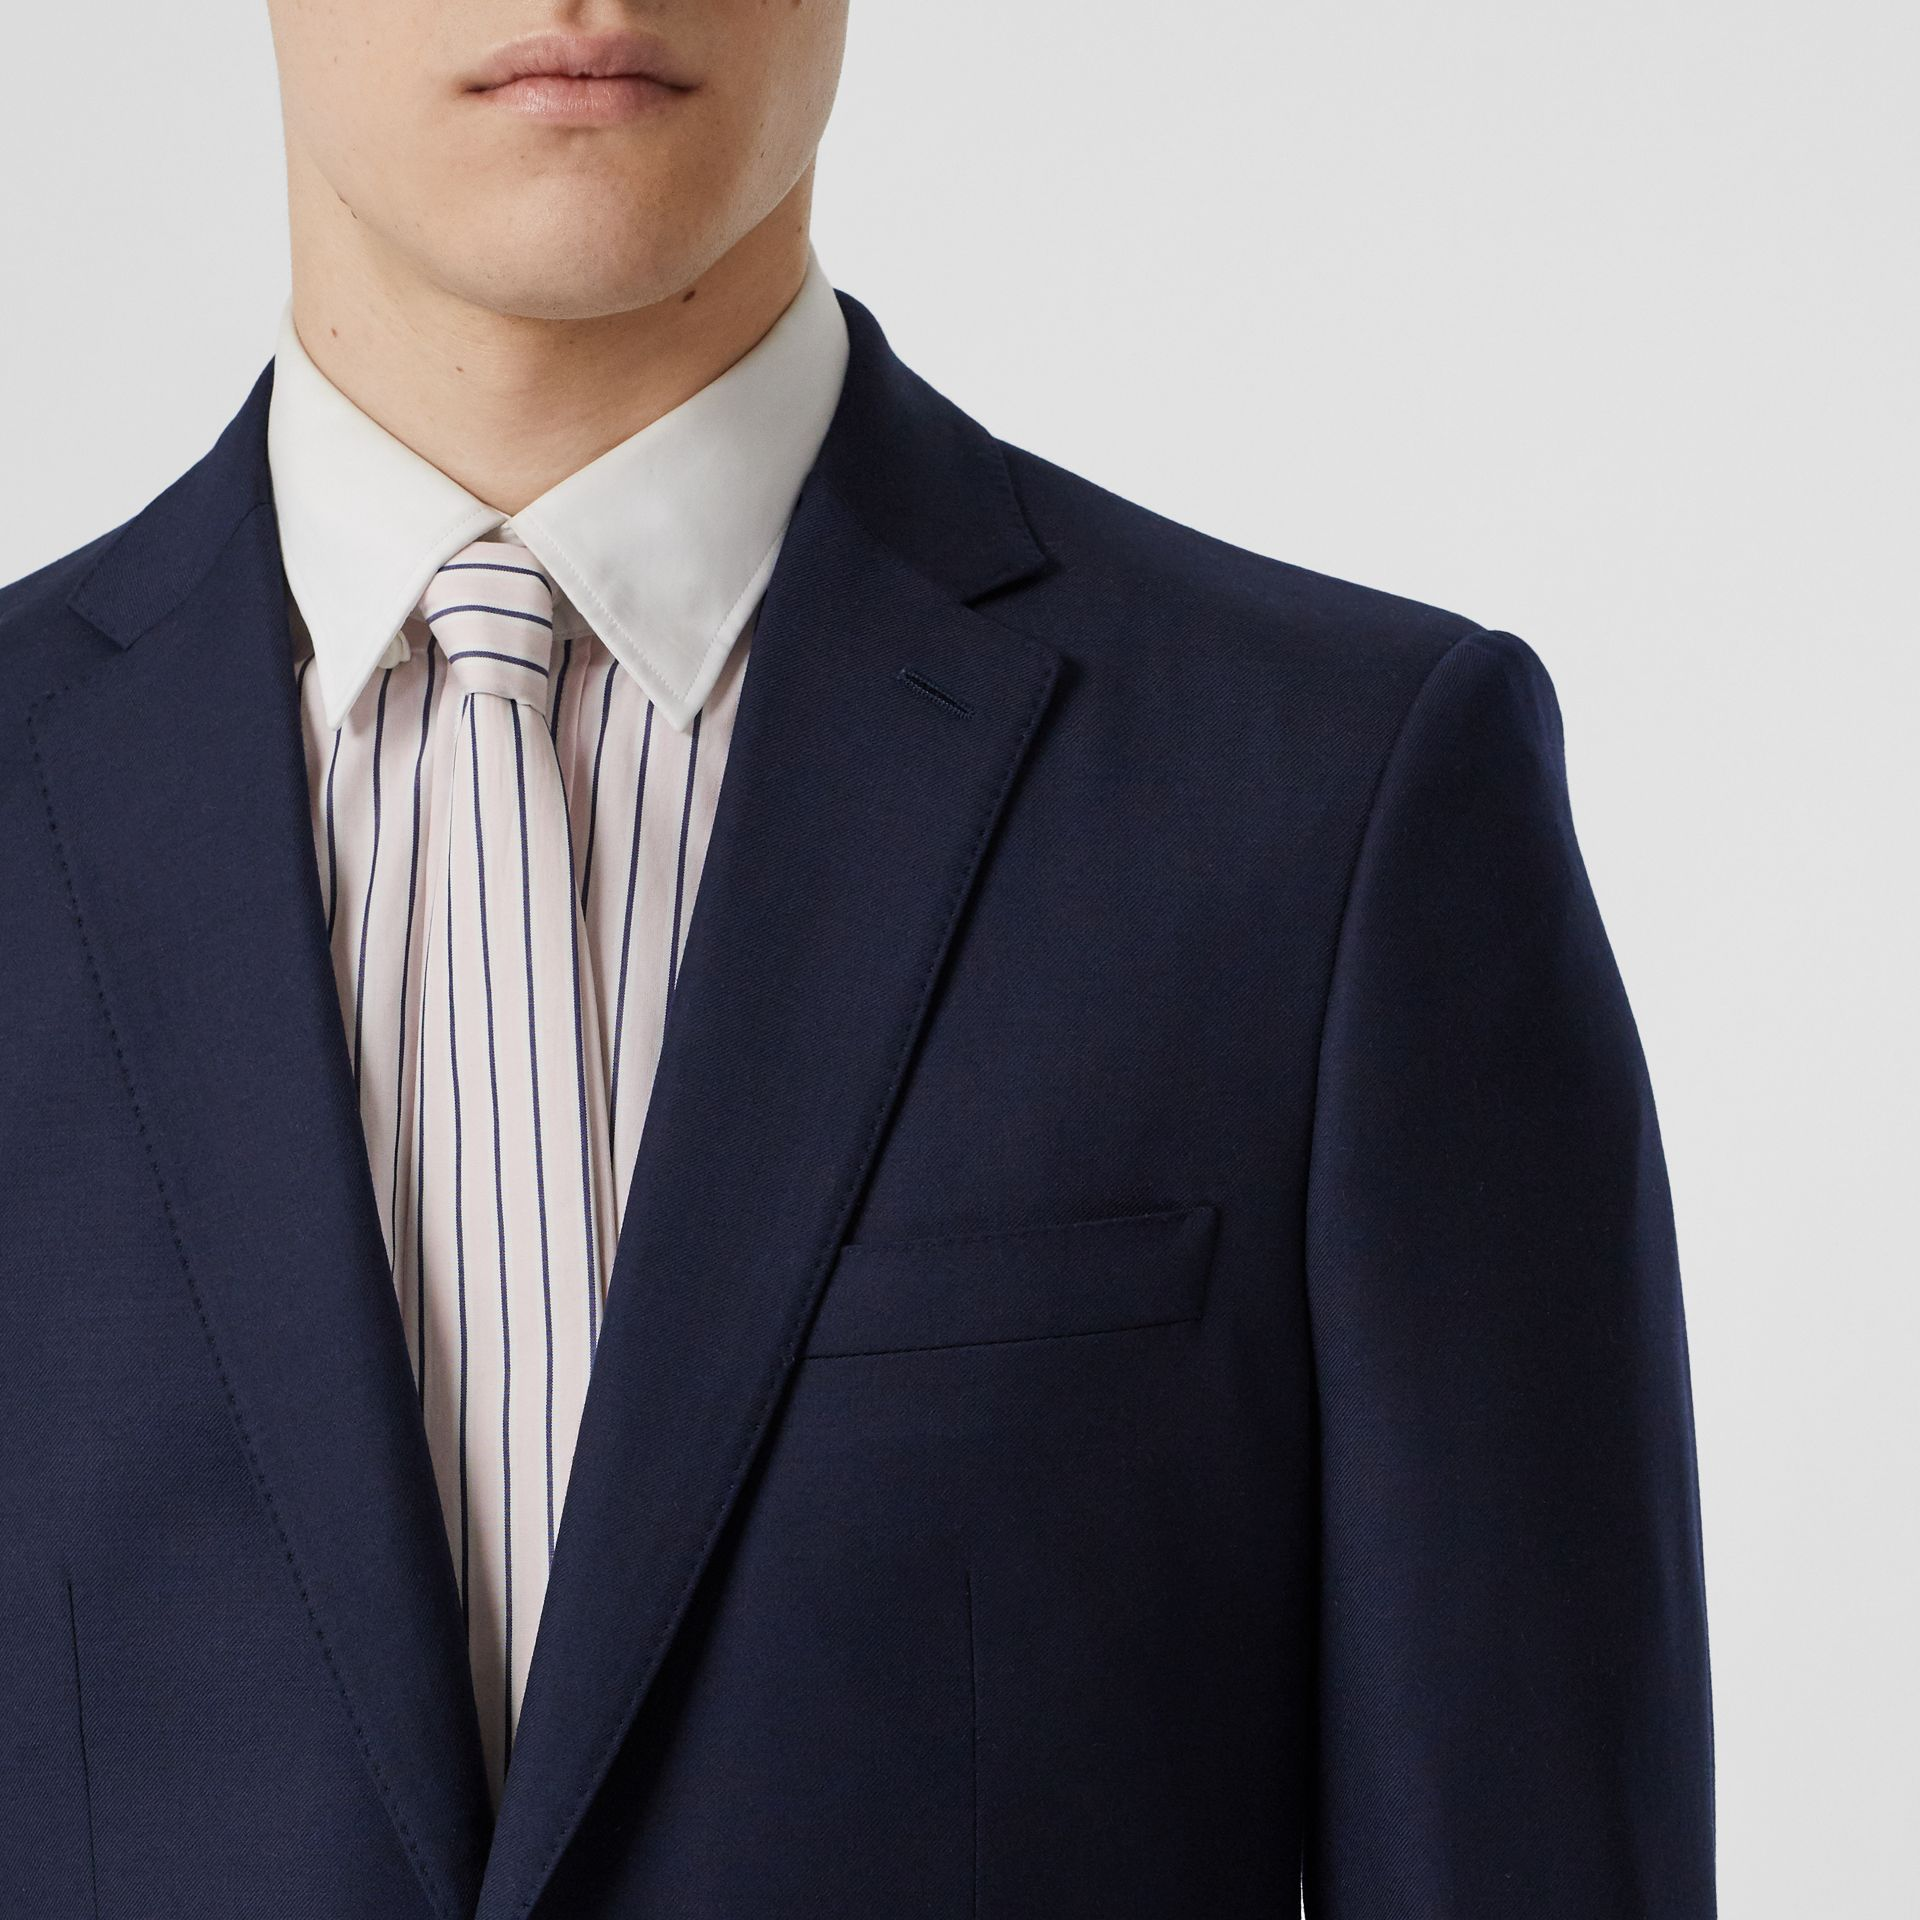 Classic Fit Wool Suit in Navy - Men | Burberry - gallery image 1